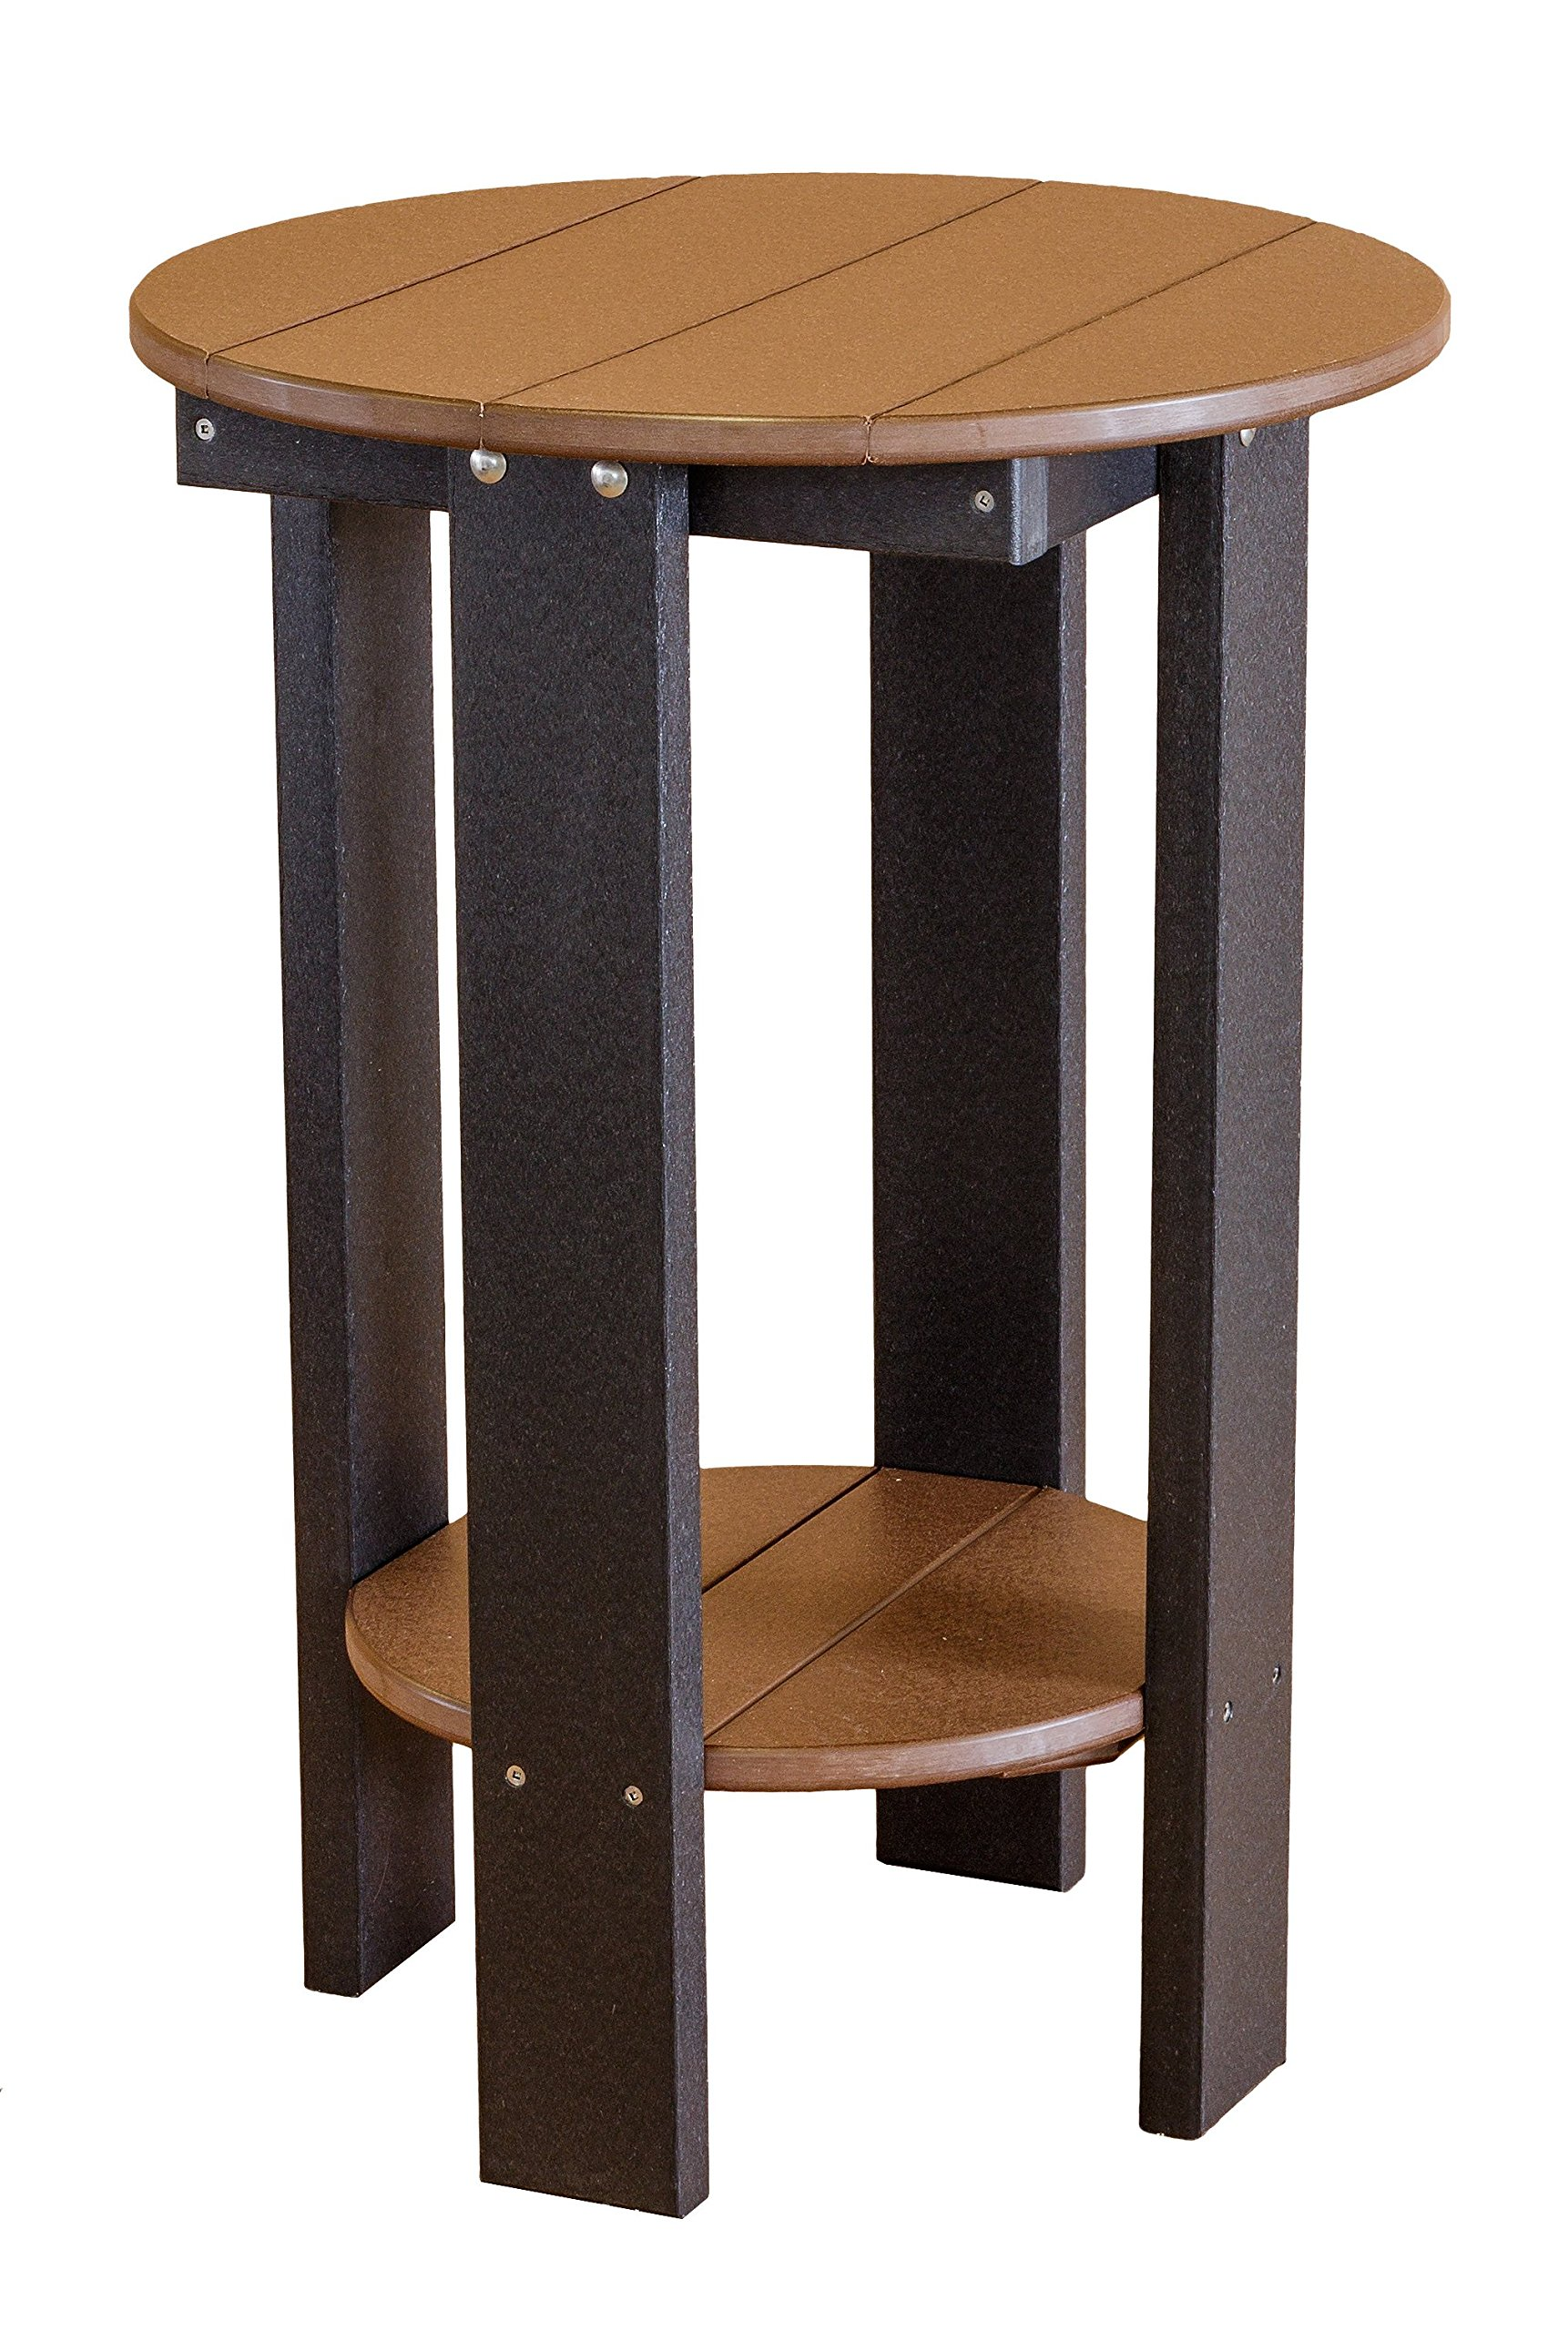 Little Cottage Company Heritage Balcony Table, Light Gray